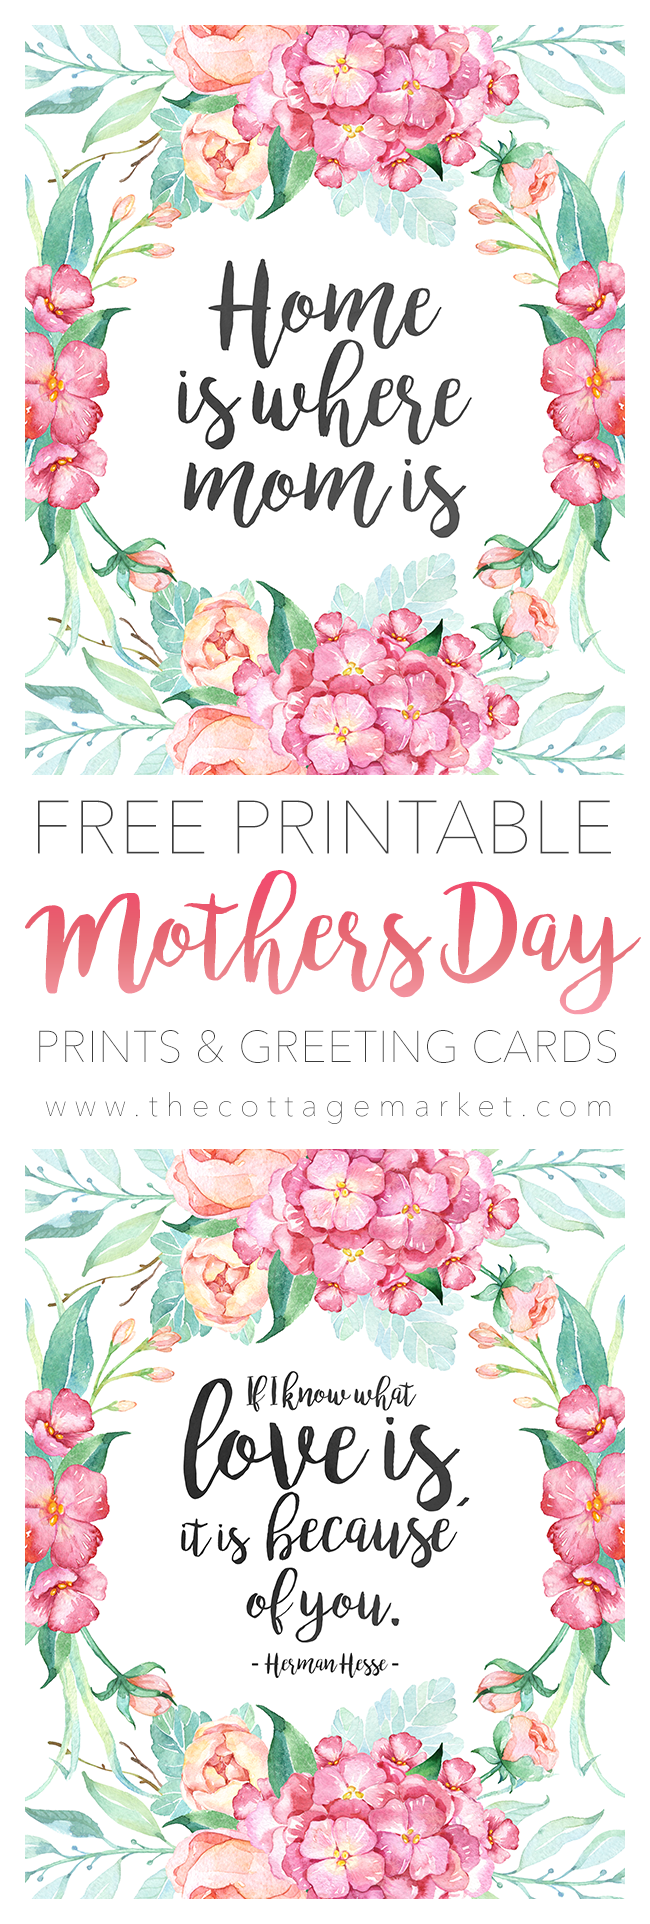 Free printable mothers day prints and greeting cards the tcm mothersday tower one kristyandbryce Choice Image